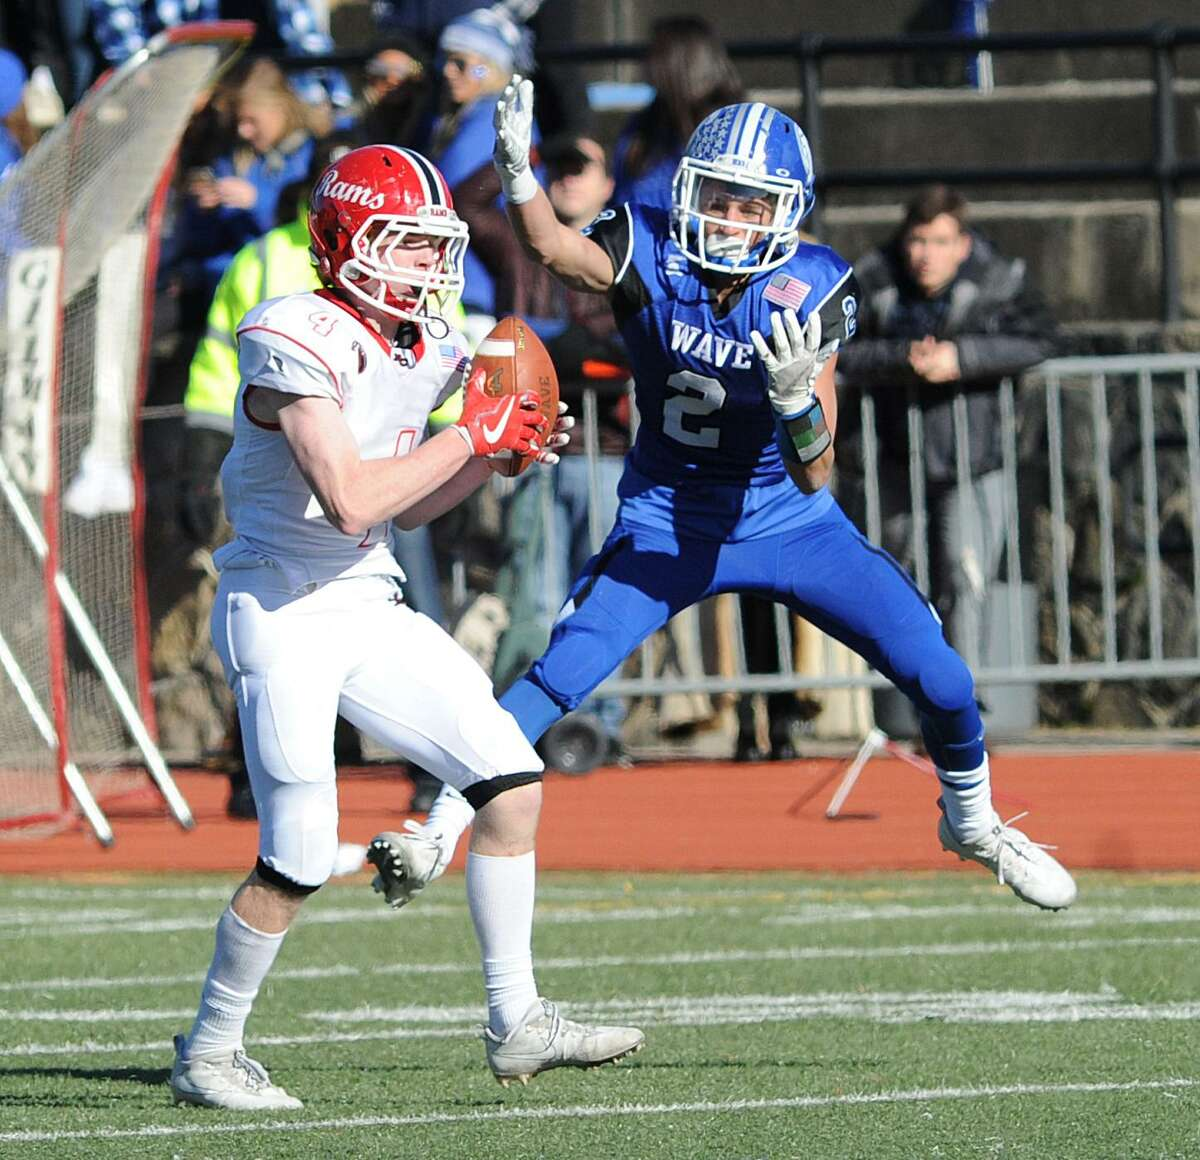 New Canaan defender Zachary (#4), left, steps in front of Darien receiver Alexander Dehmel (#2), to intercept a pass that he returned for a touchdown that was the final touchdown of the game in the 4th quarter of the 2017 Turkey Bowl high school football game between Darien High School and New Canaan High School at Boyle Stadium in Stamford, Conn., Thursday, Nov. 23, 2017. New Canaan won the game 27-0, beating an undefeated Darien team that was without starting quarterback Jack Joyce and star defensive back Brian Minicus, both of whom were arrested Wednesday night on charges stemming from an assault earlier in the month.